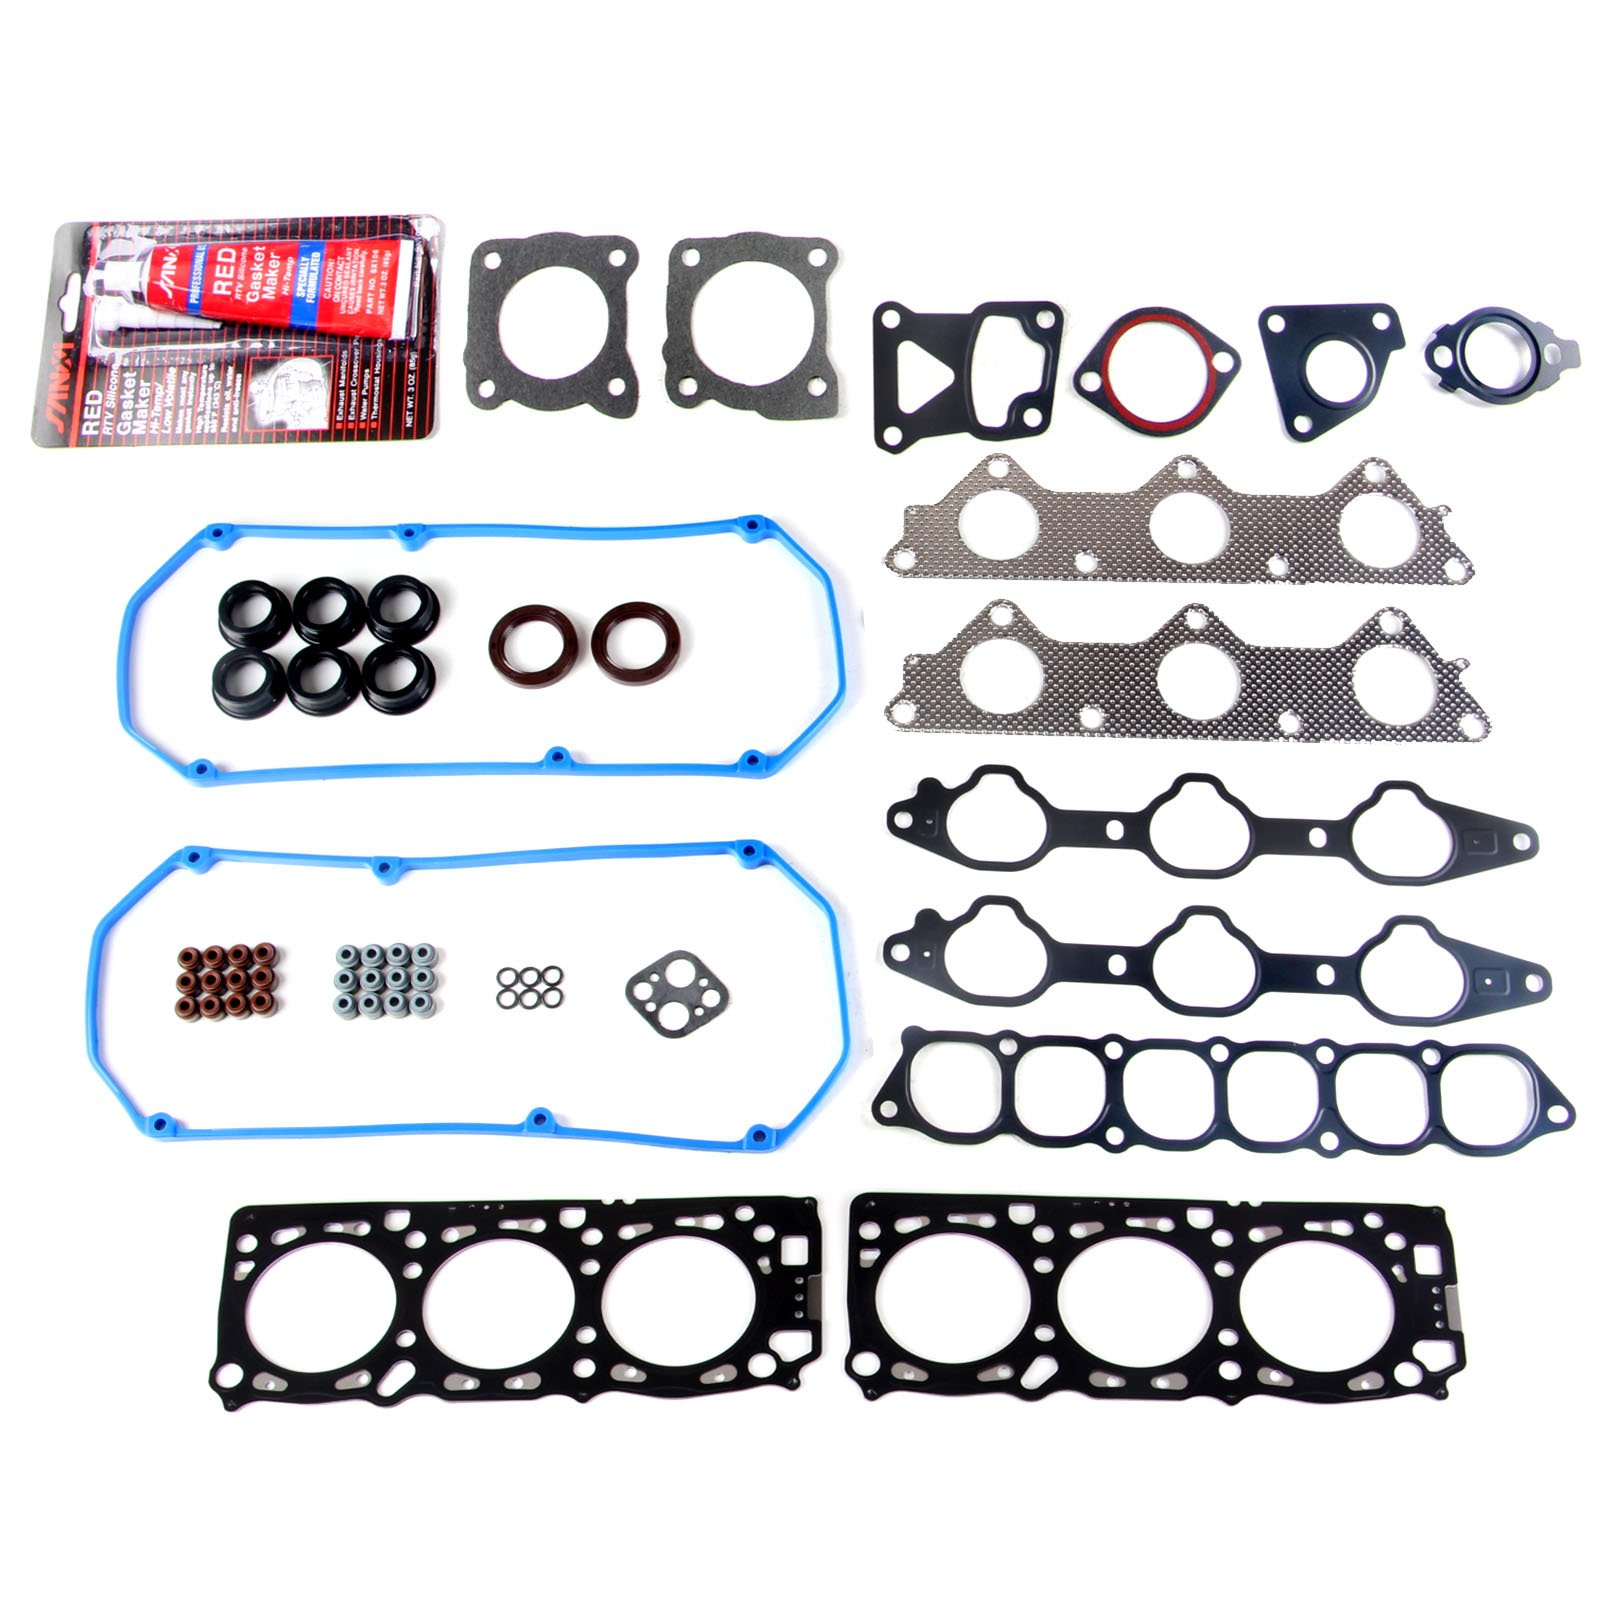 ECCPP Compatible fit for Head Gasket Set Automotive Replacement Engine Head Gasket for 1995-1998 Mitsubishi Montero 19951996 3.0L V6 SOHC ENG''6G72''